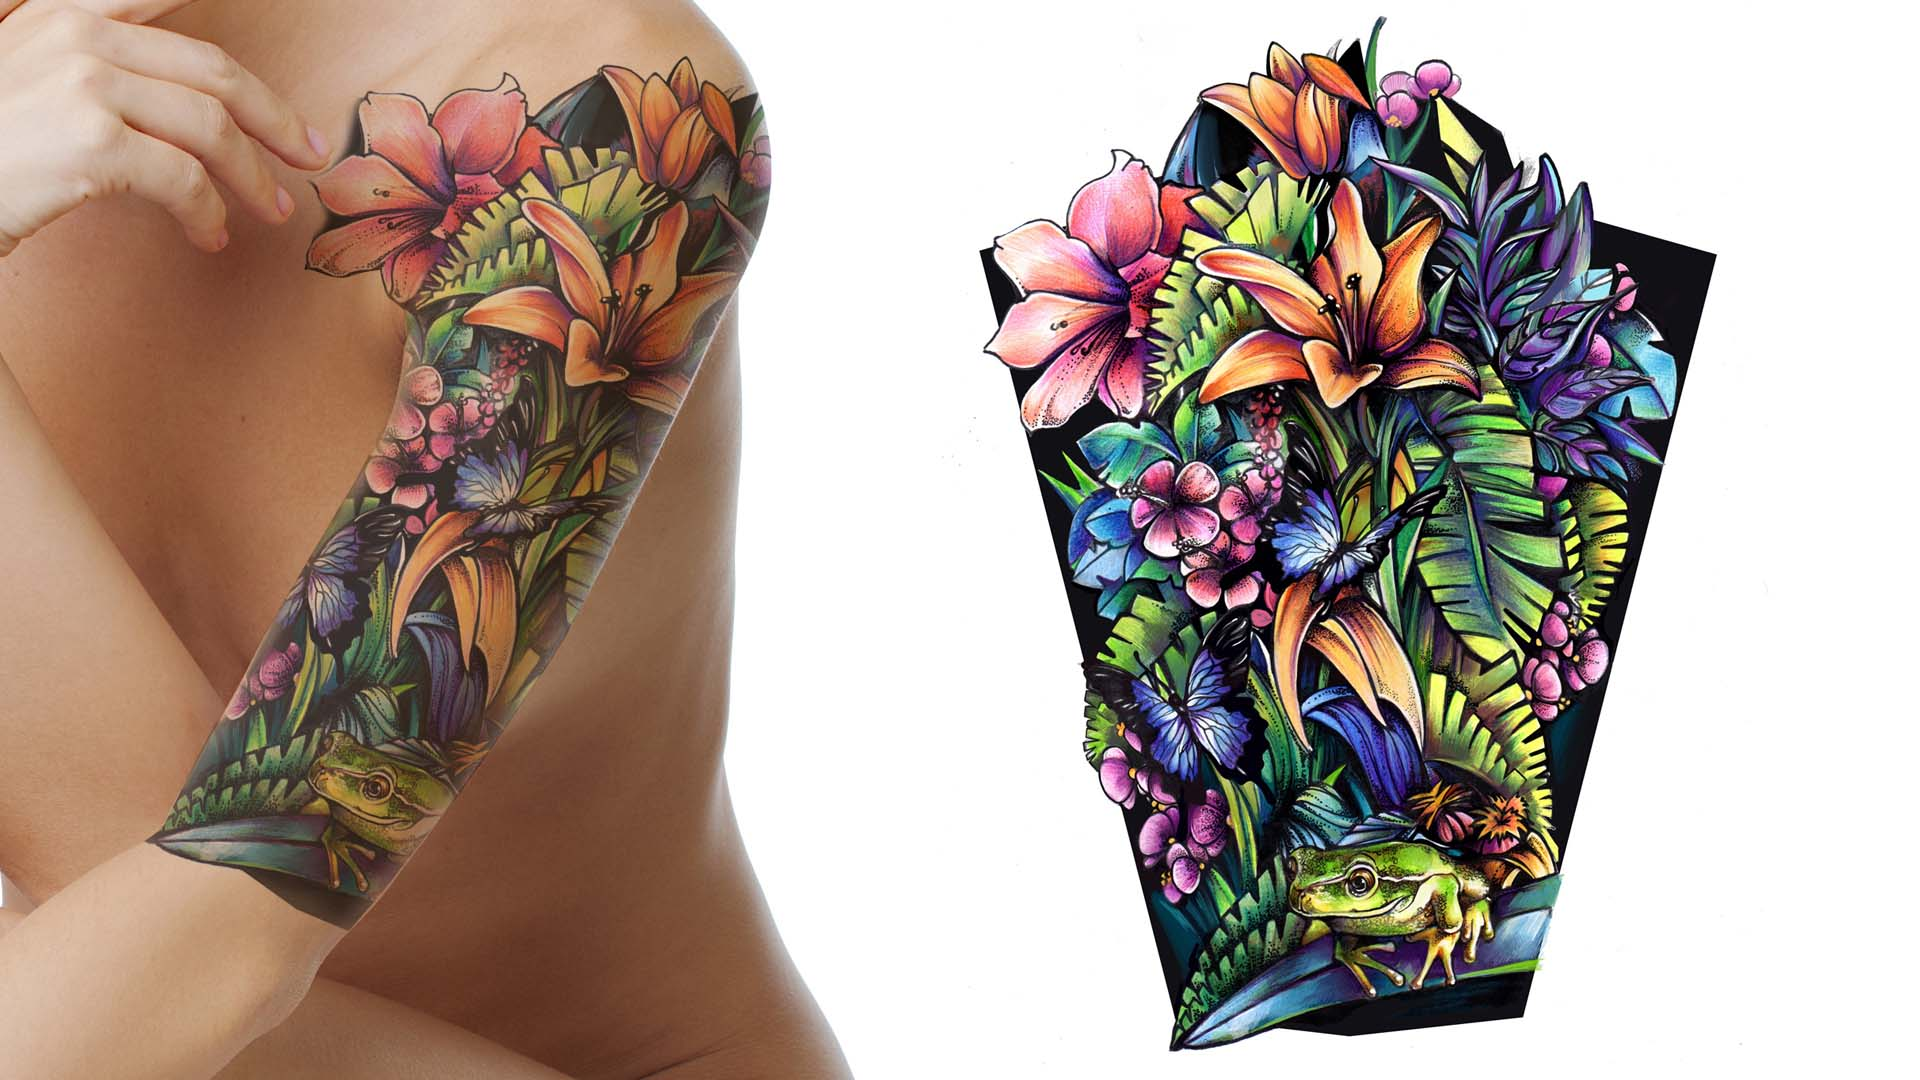 Choosing A Tattoo Studio For A Rose Vine Tattoos On Arm